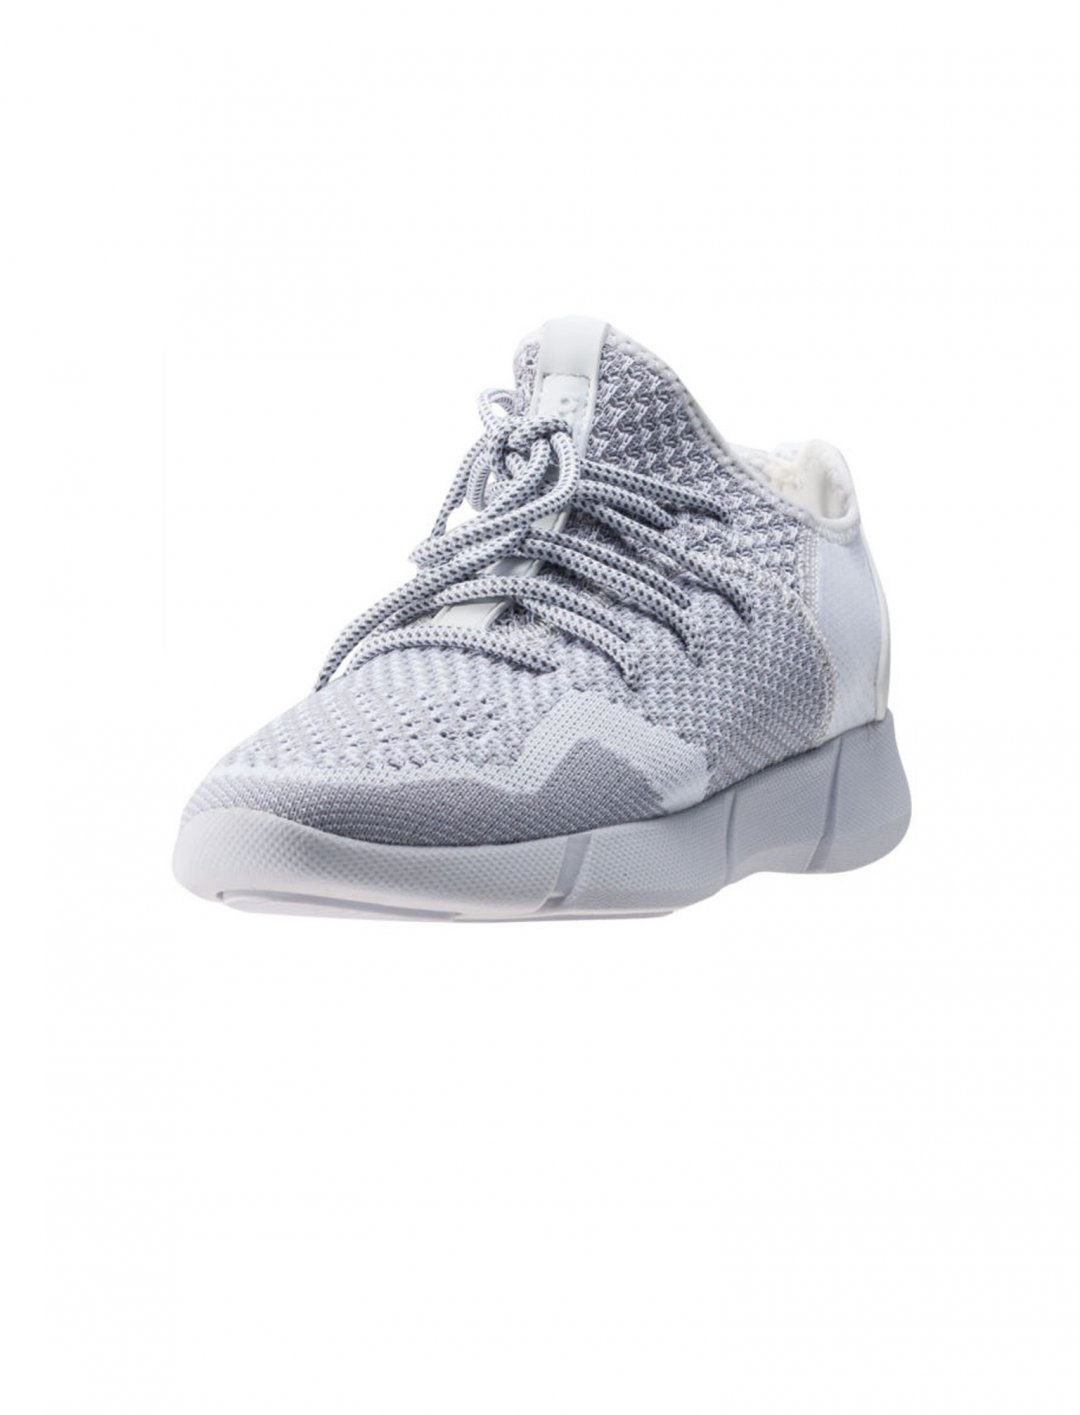 "Knit Womens Trainers {""id"":12,""product_section_id"":1,""name"":""Shoes"",""order"":12} Cortica"